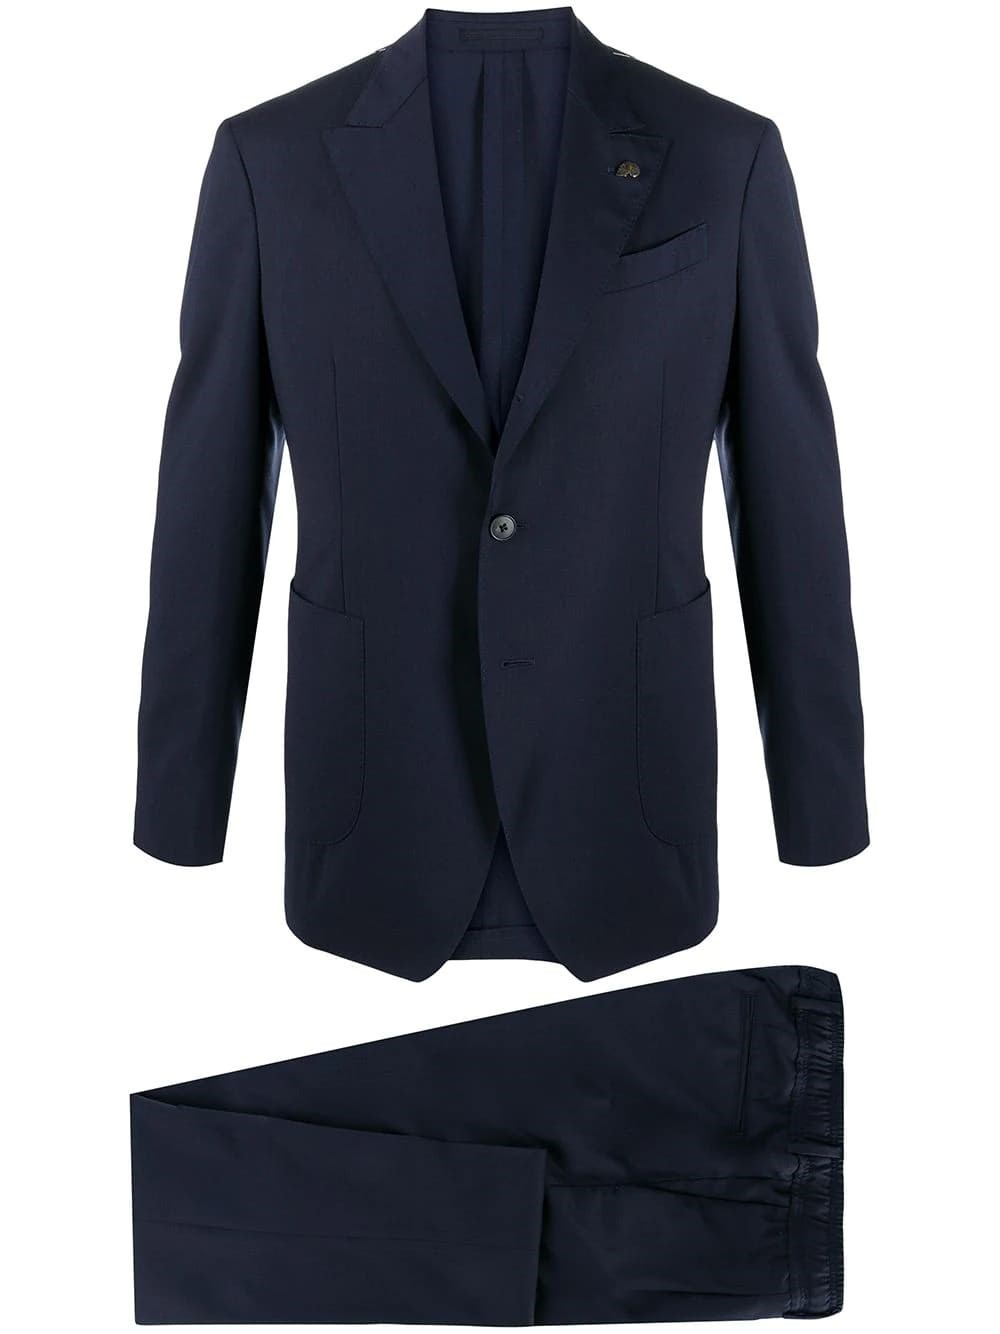 GABRIELE PASINI Single-Breasted Suit